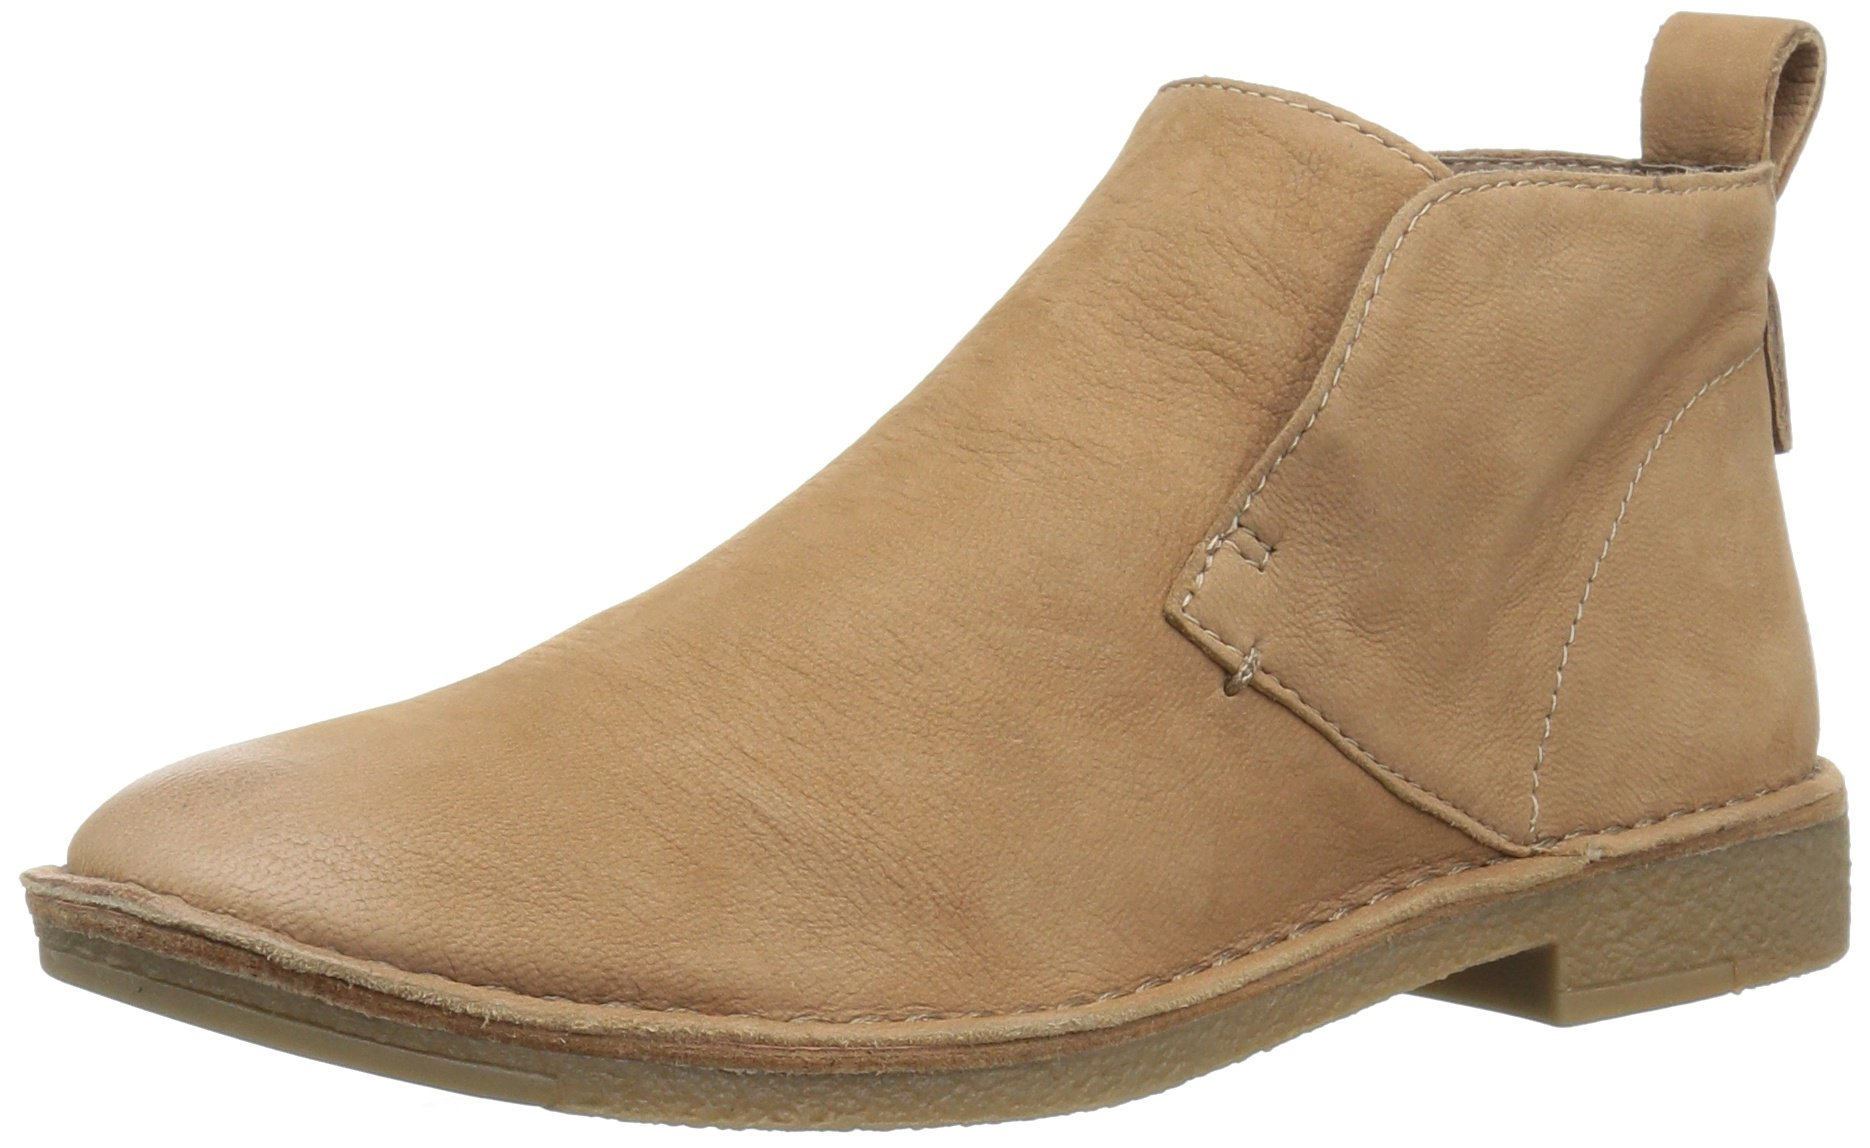 Dolce Vita Women's Findley Boot,Sand,8.5 M US